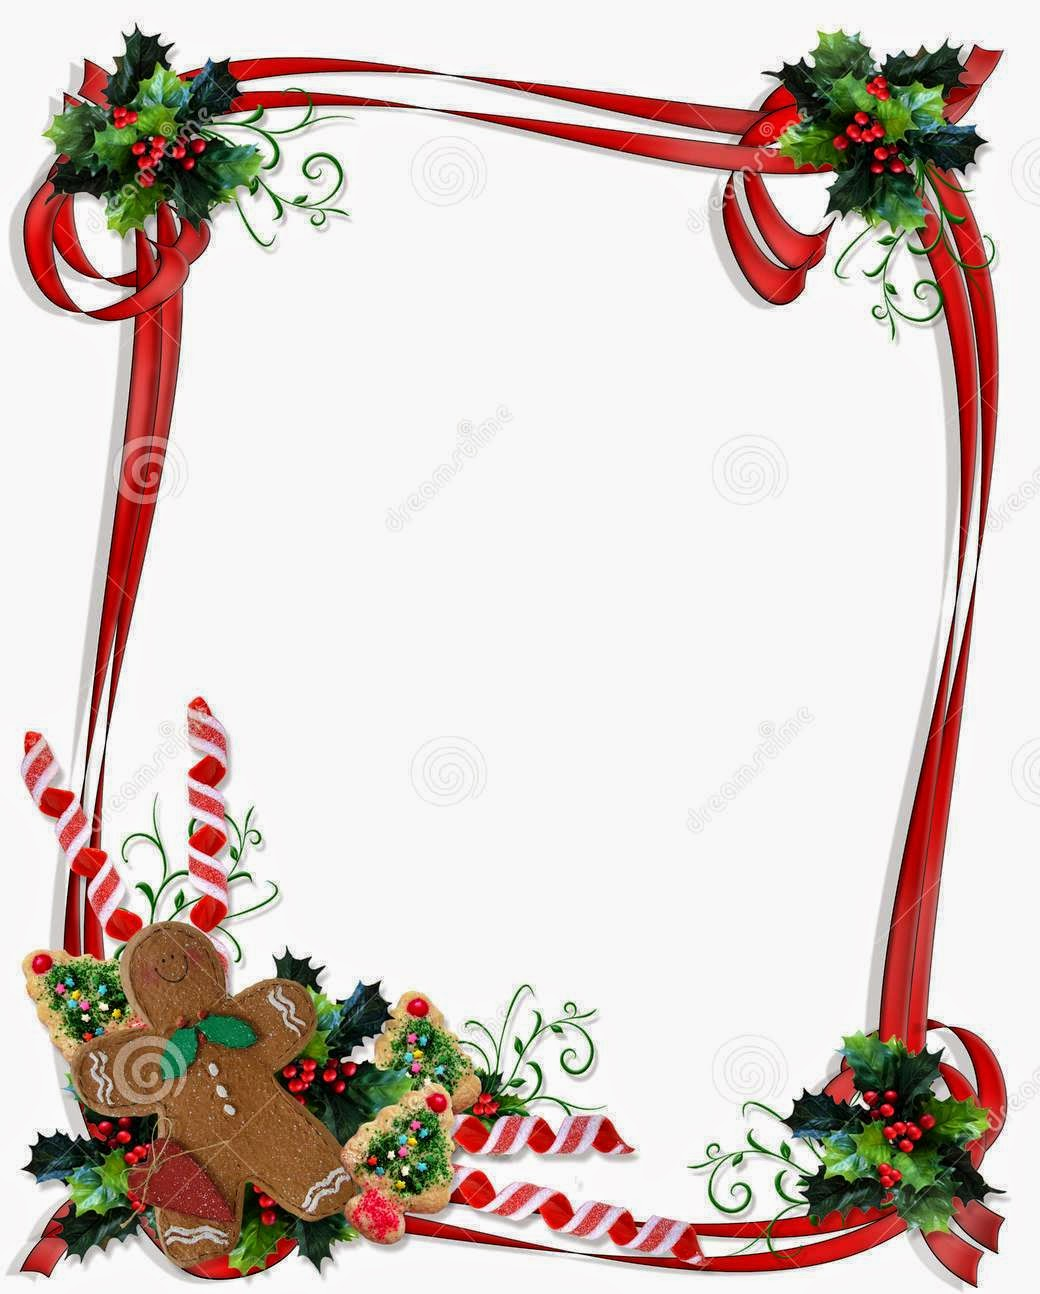 Christmas Free Clipart Borders.